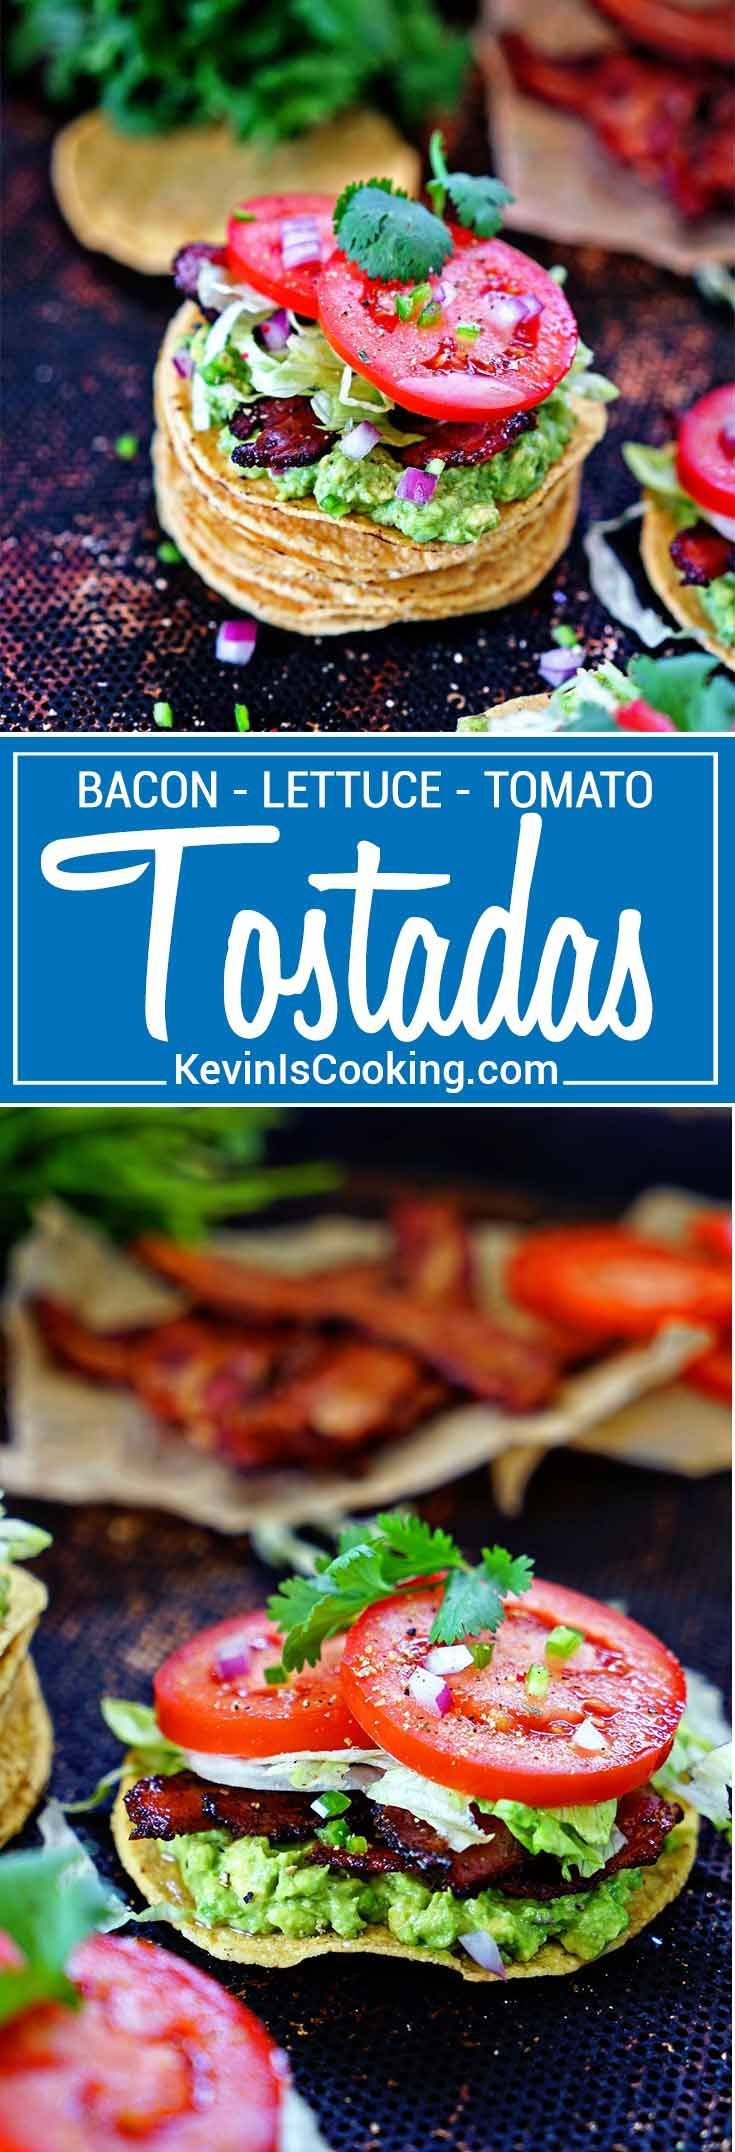 BLT Tostadas with Guacamole - A Mexican twist on an American classic sandwich - bacon, lettuce, tomatoes and a spicy guacamole all atop a crunchy tostada. via @keviniscooking